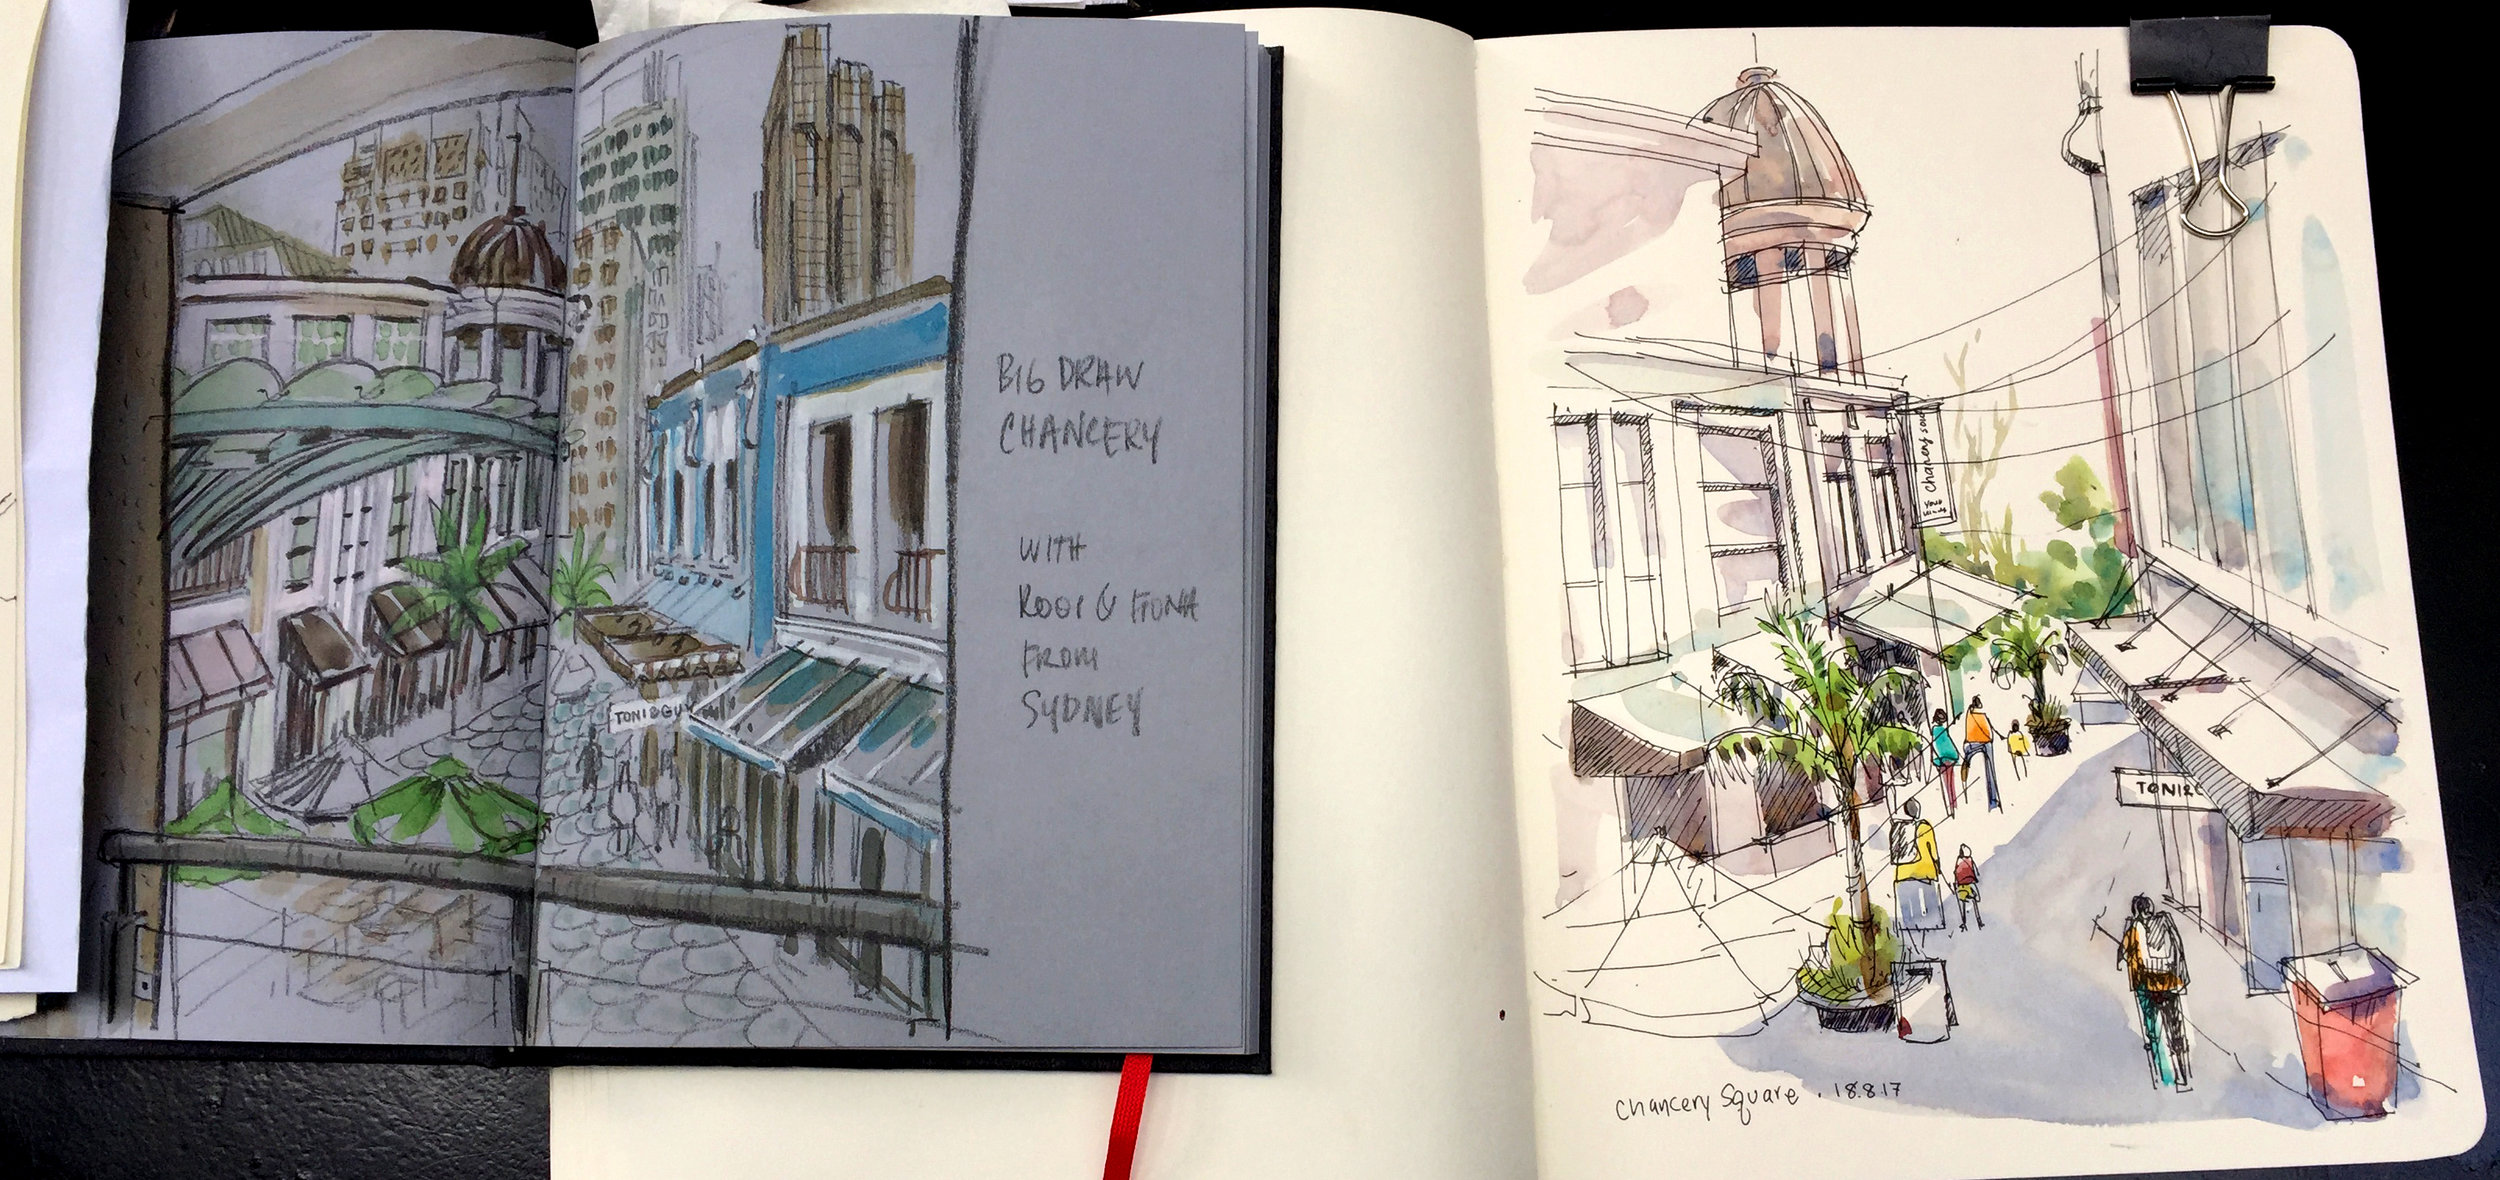 View of Chancery Square beautifully rendered by Murray Dewhurst from Auckland (left) and RooiPing Lim from Sydney (right).